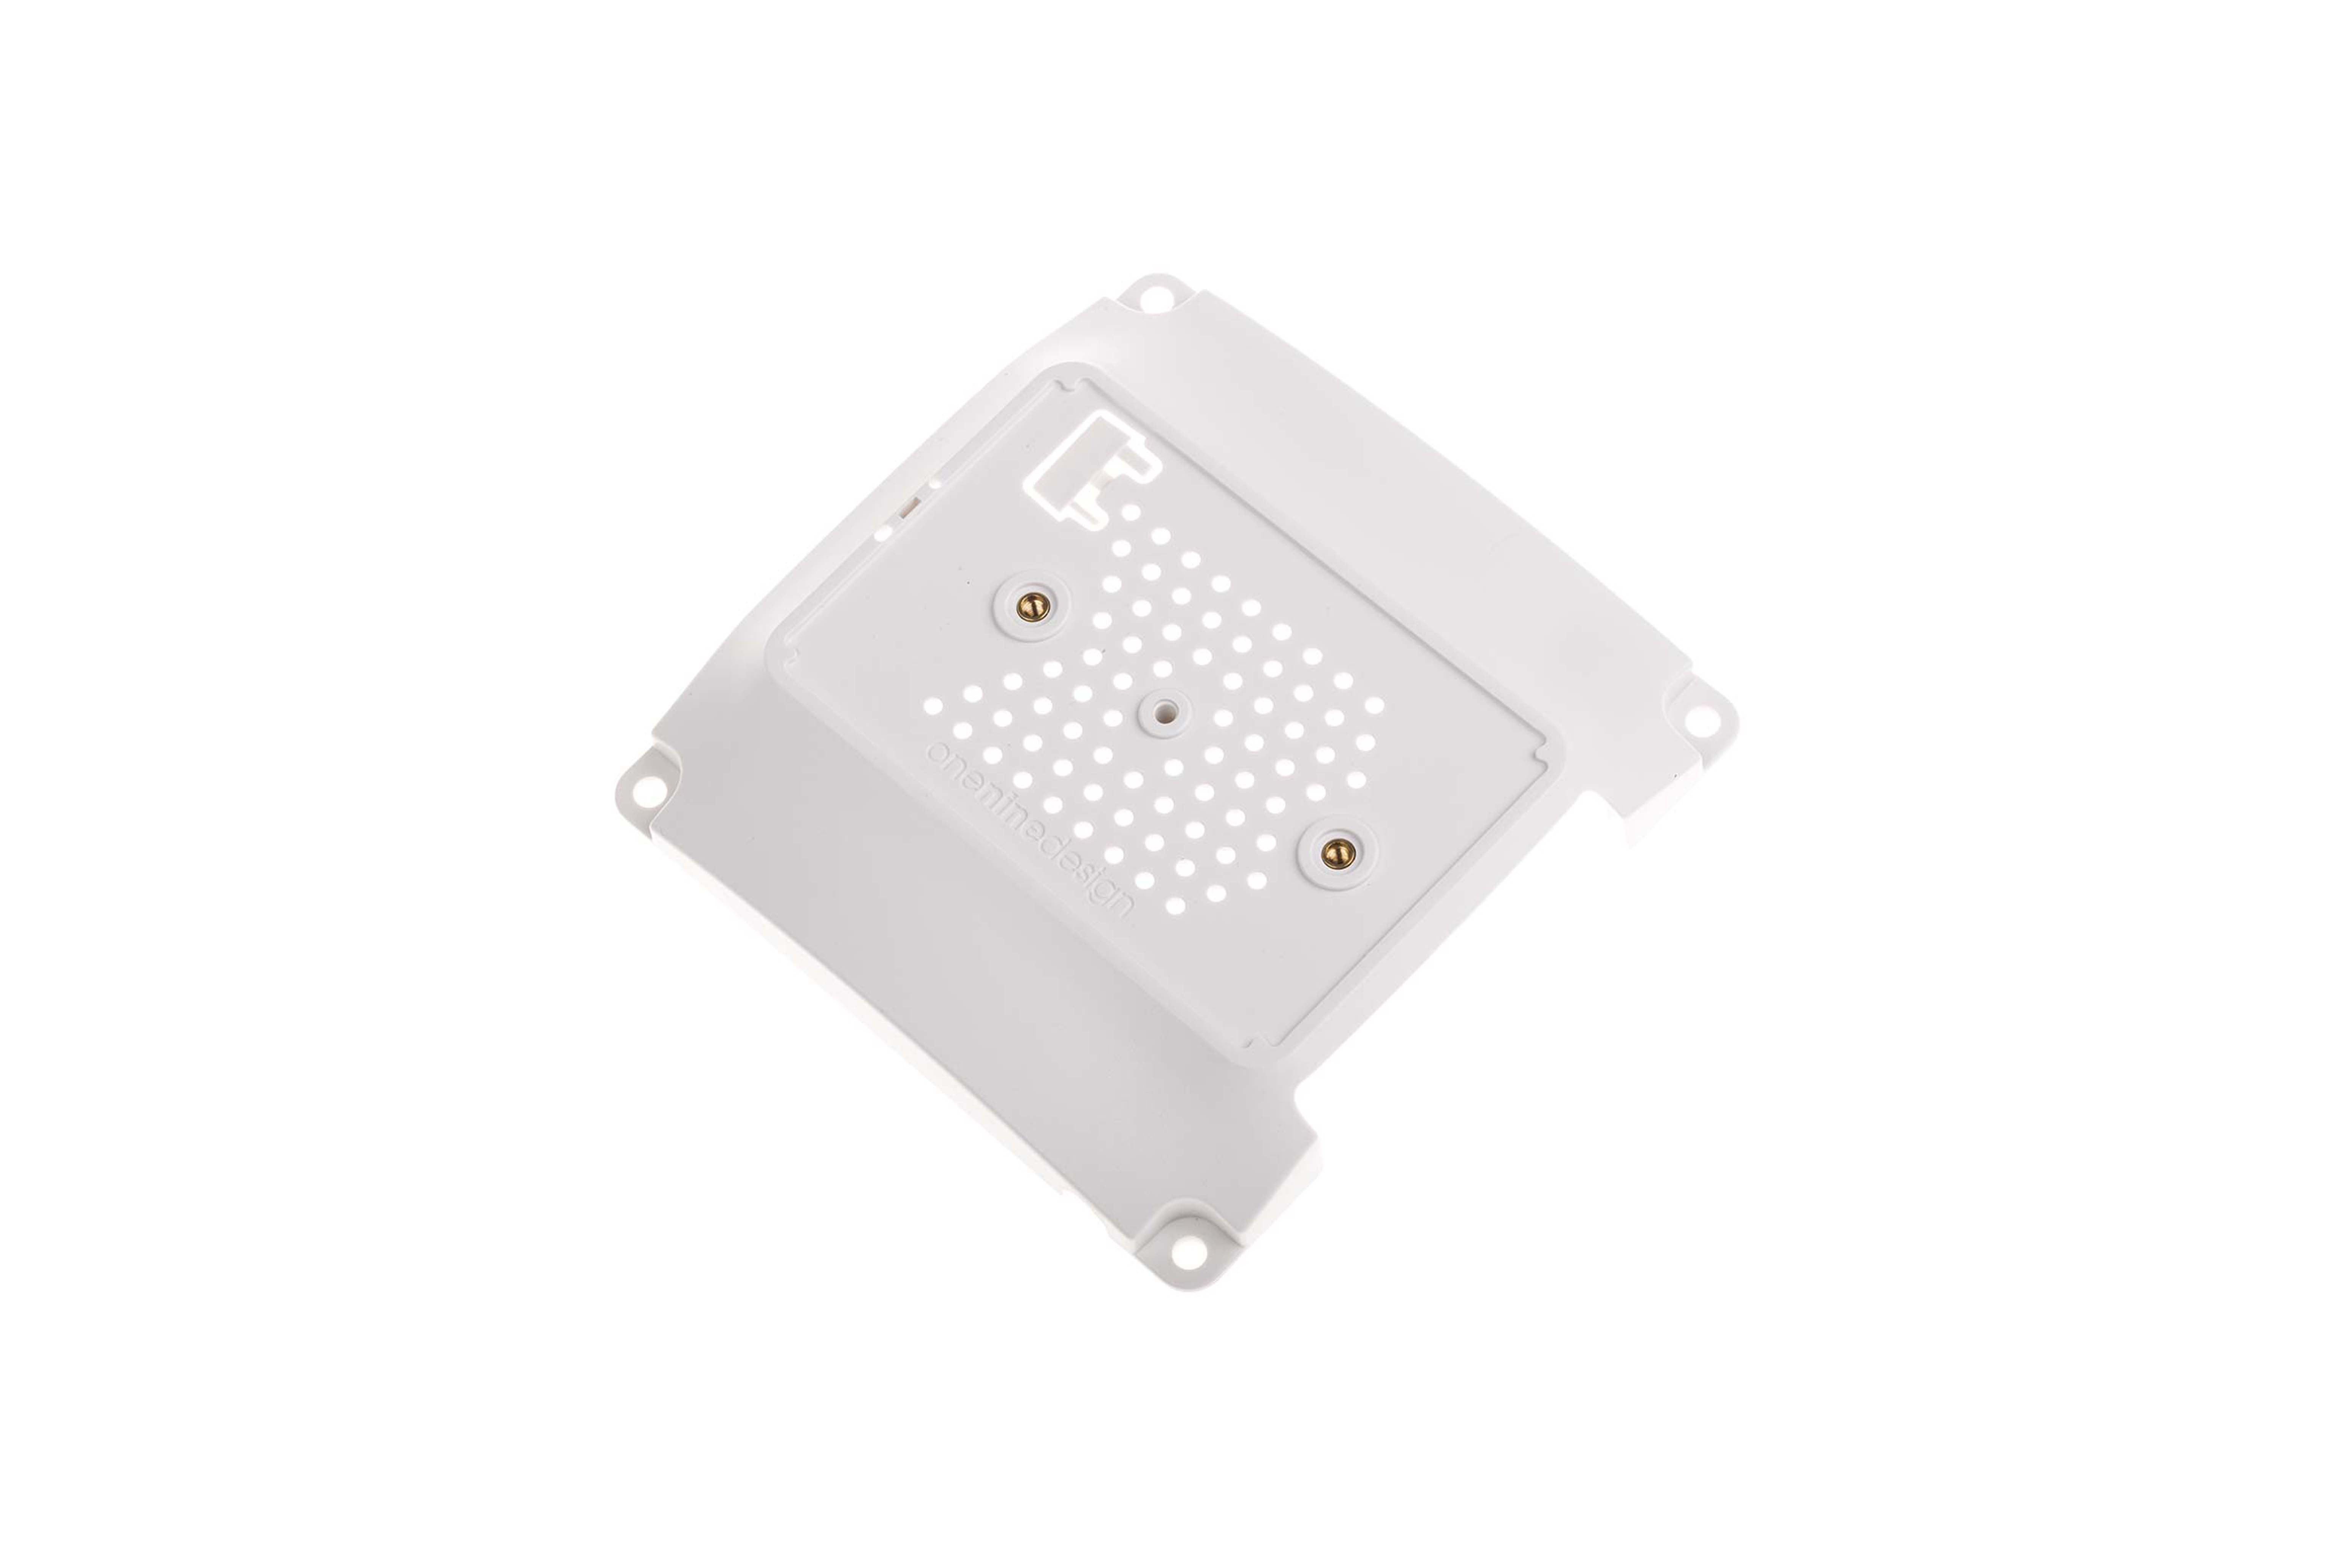 VESA Mount For Use With Raspberry Pi Case - White